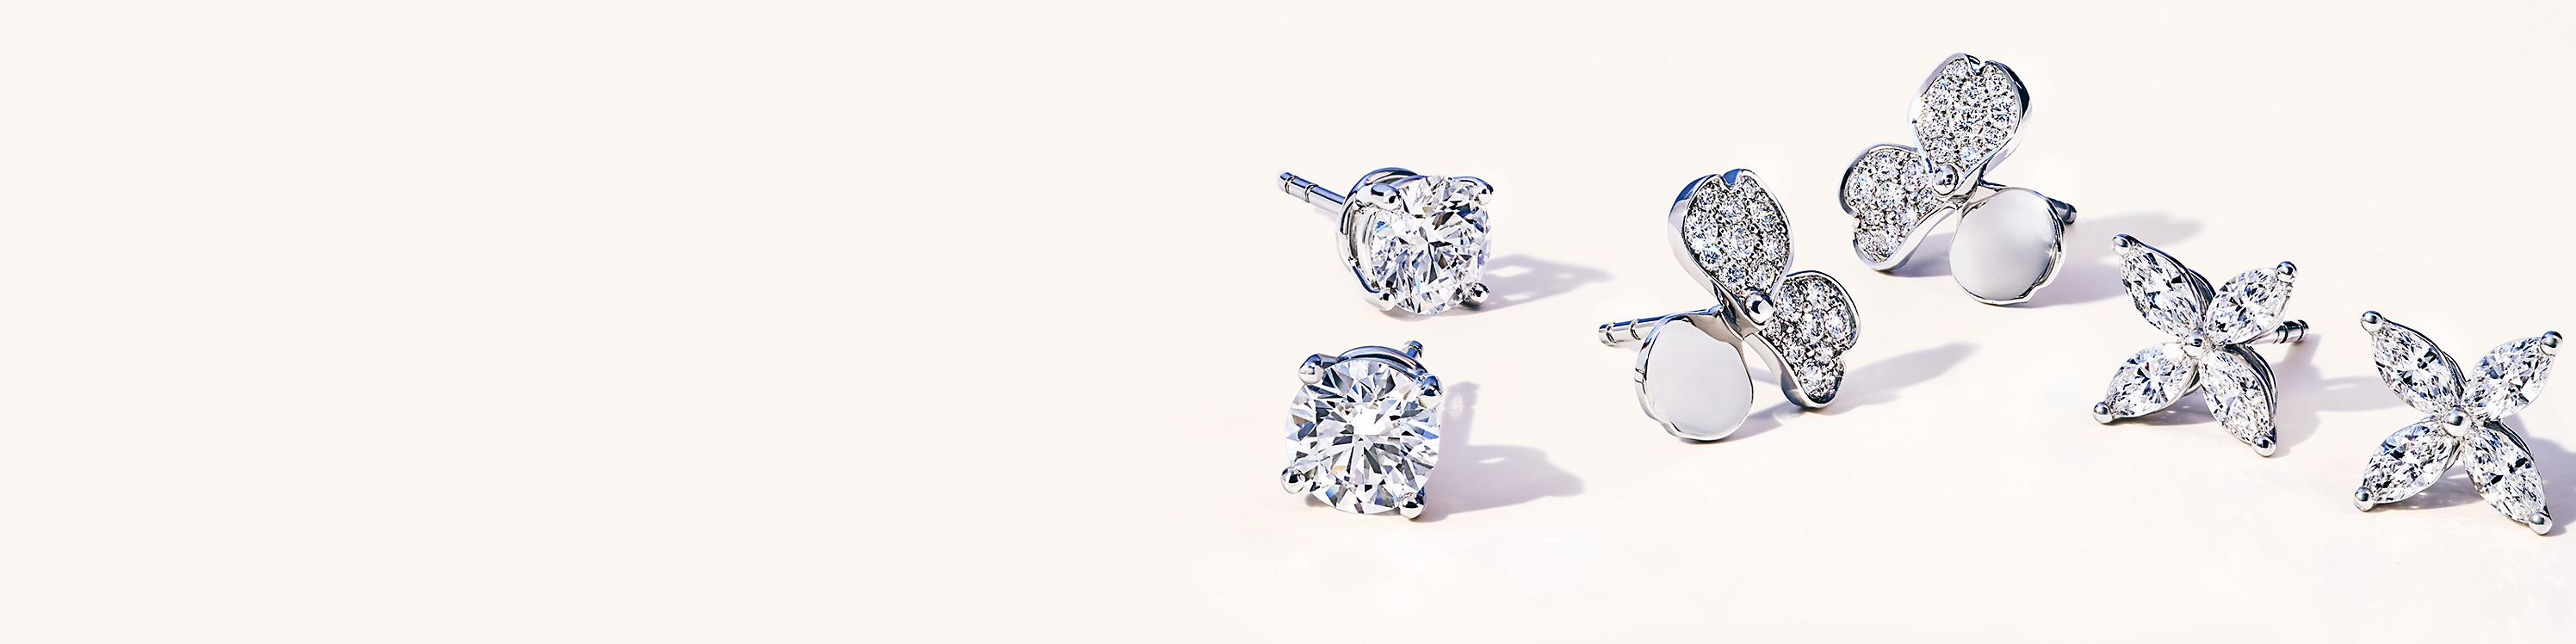 eafcc29ee Earrings for Women: Studs, Hoops & More | Tiffany & Co.